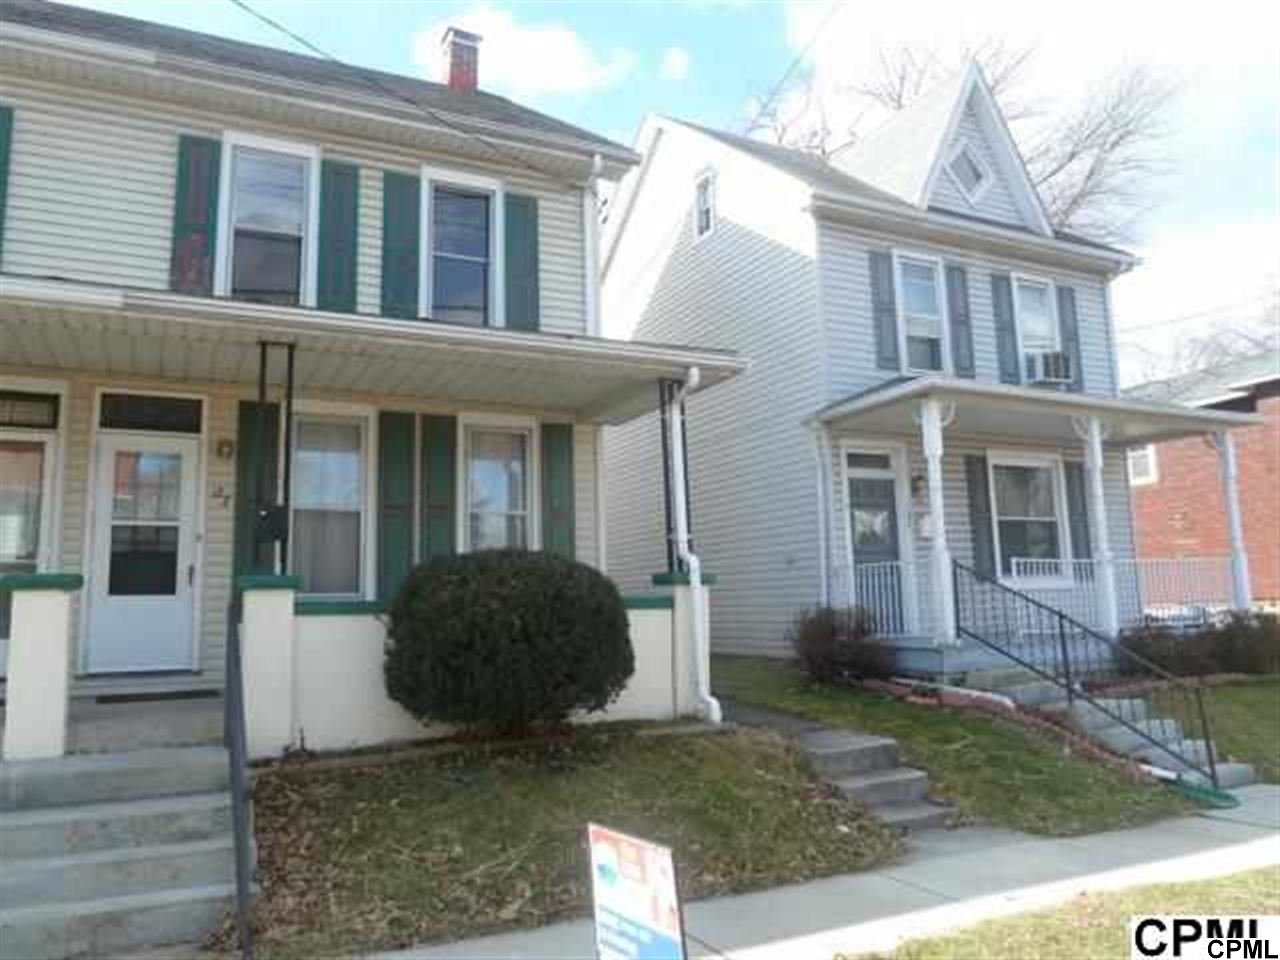 122 N 2nd St, Lemoyne, PA 17043